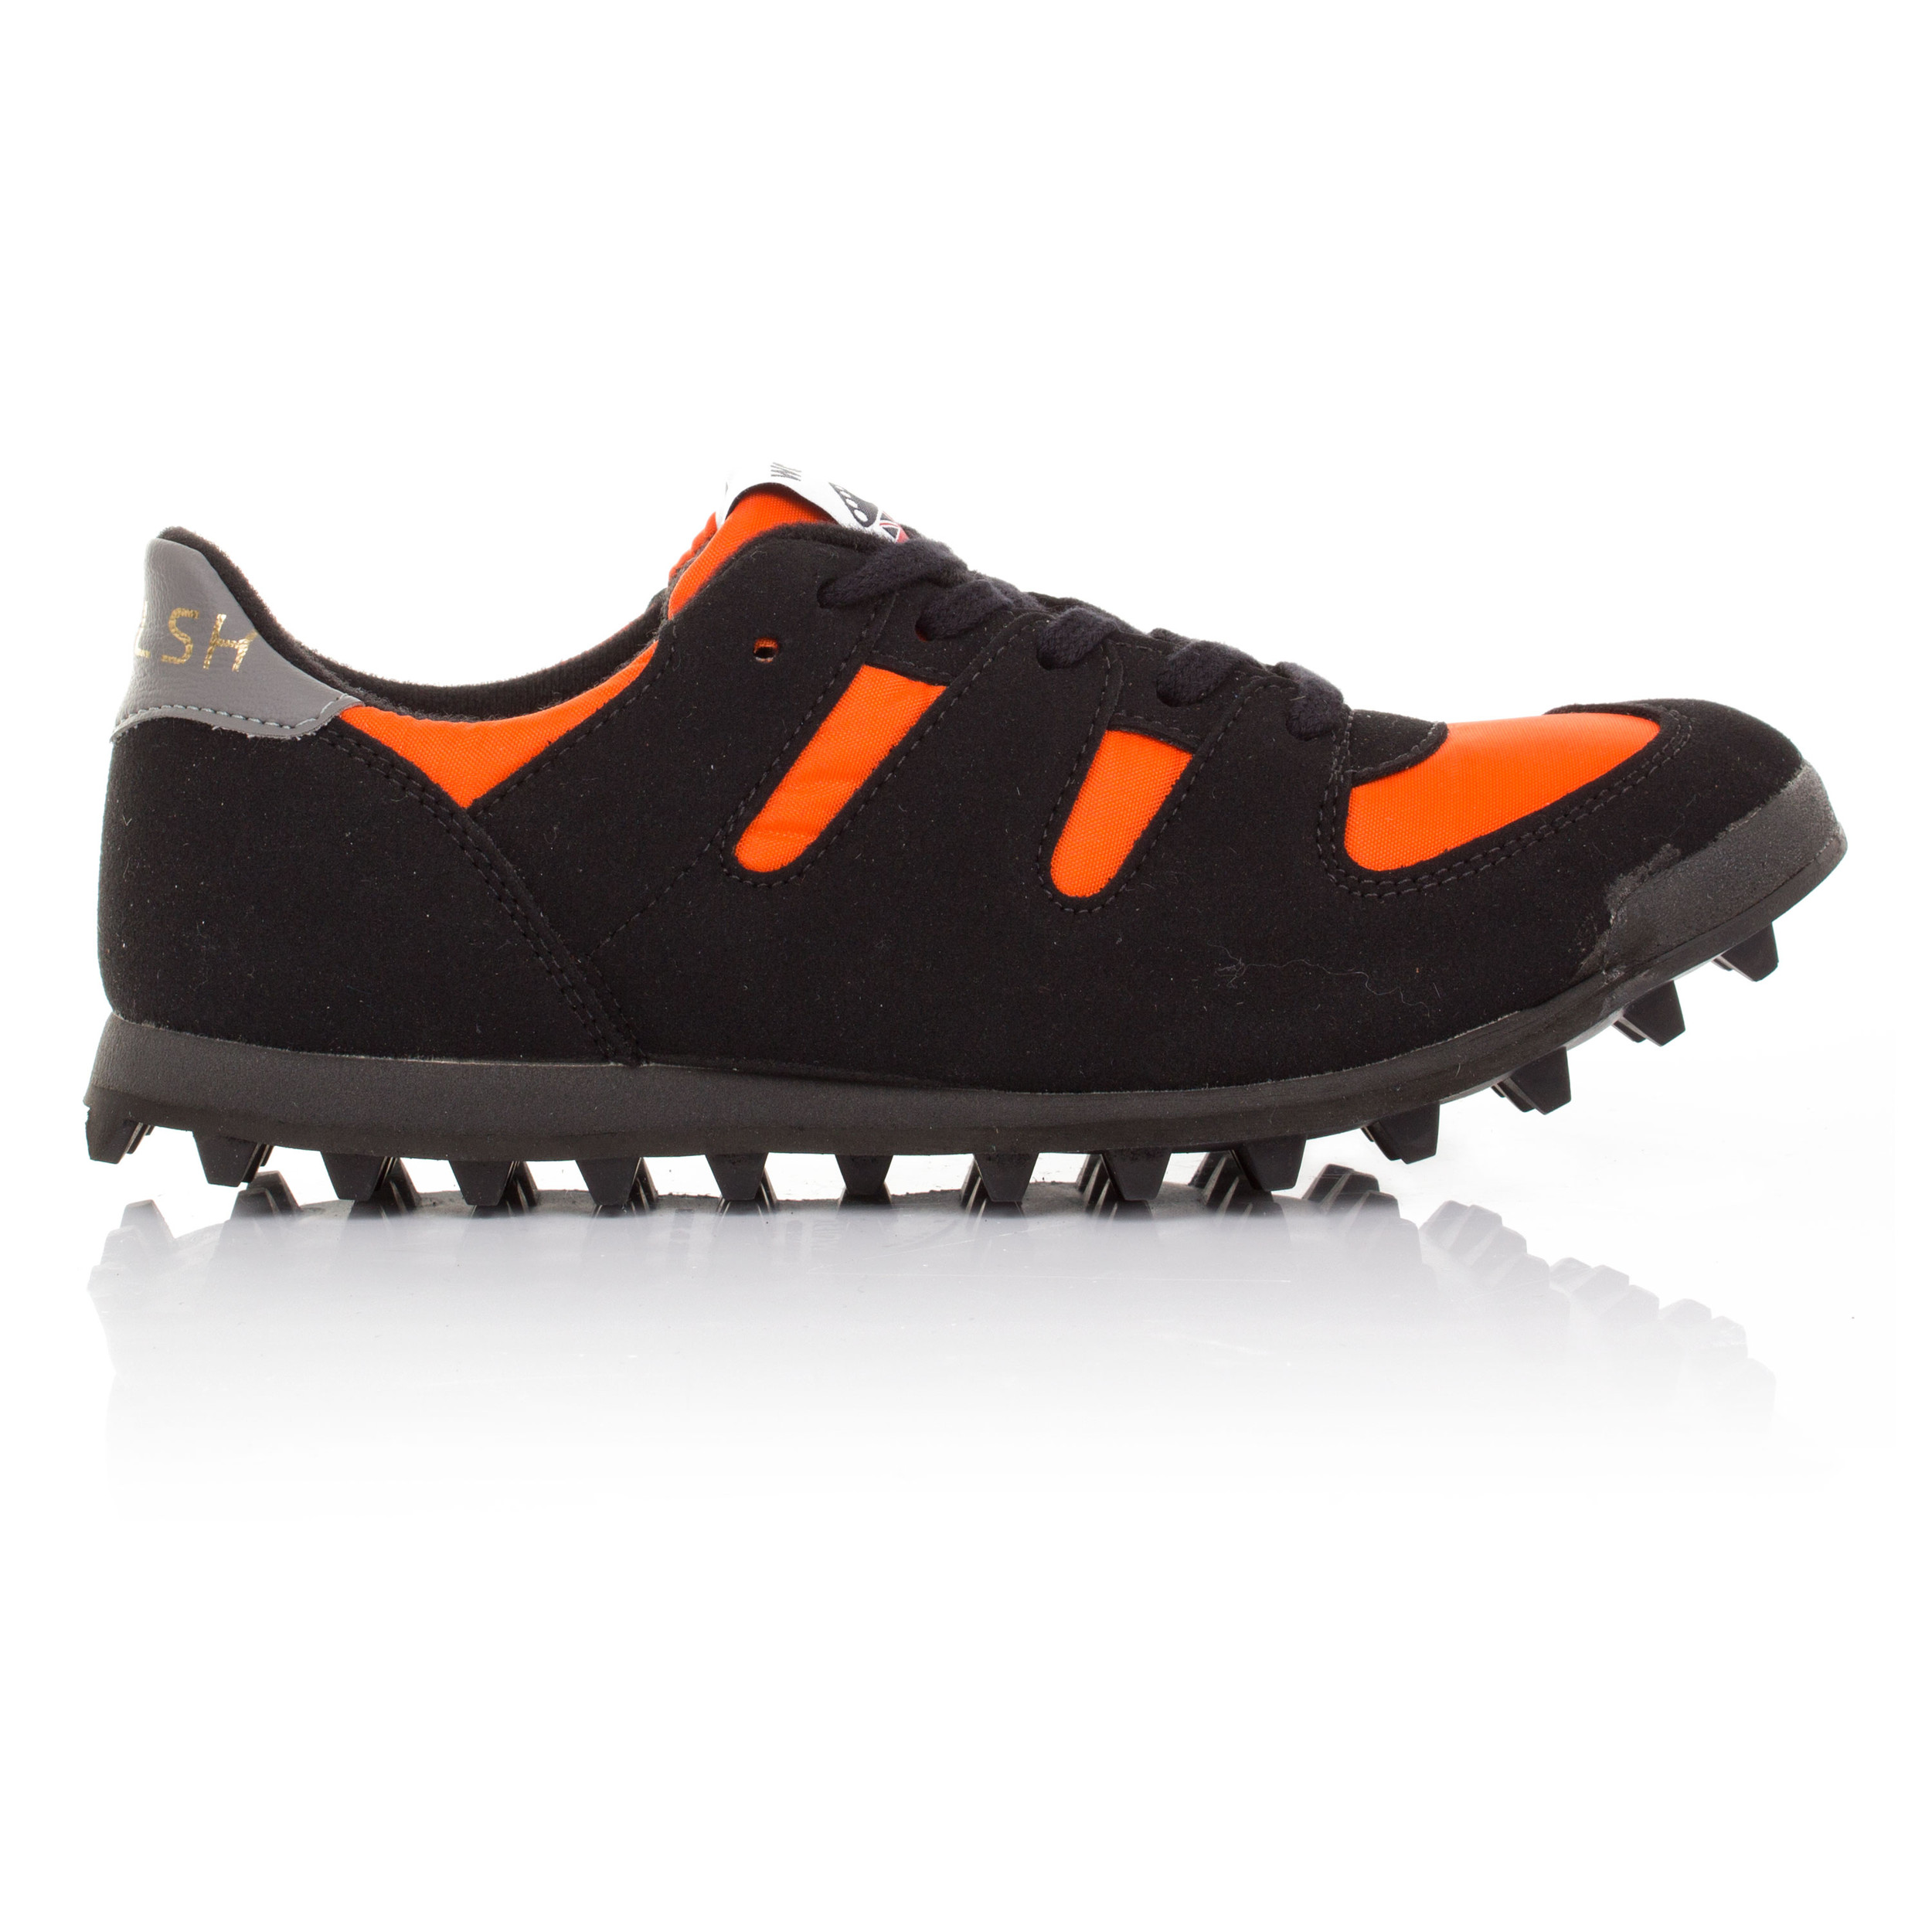 Scarpa Fell Running Shoes